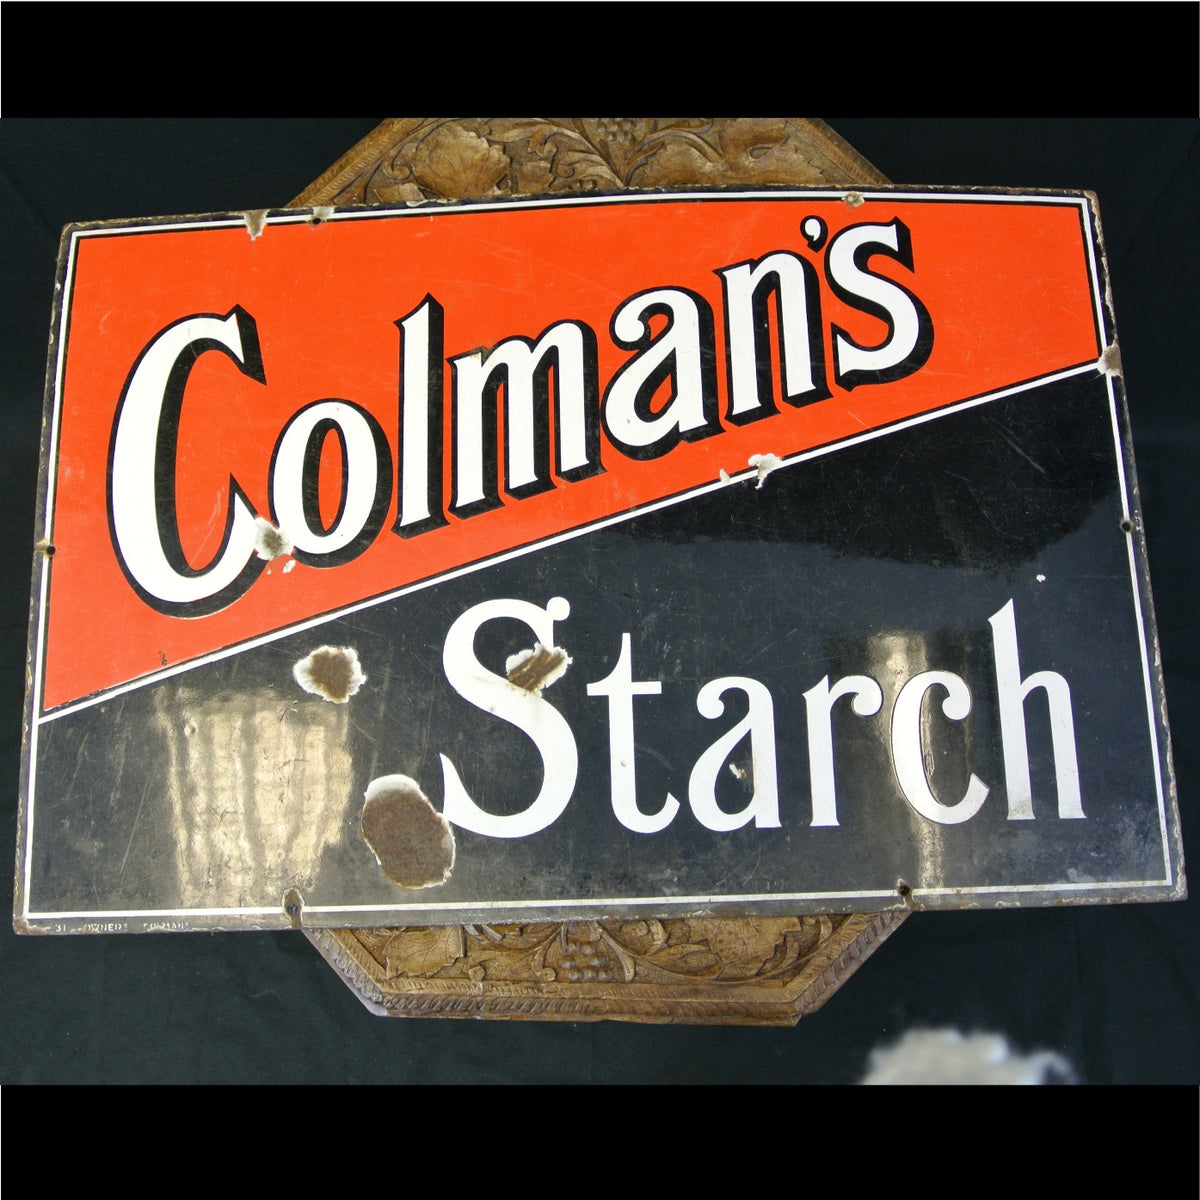 Colmans Starch enamel sign